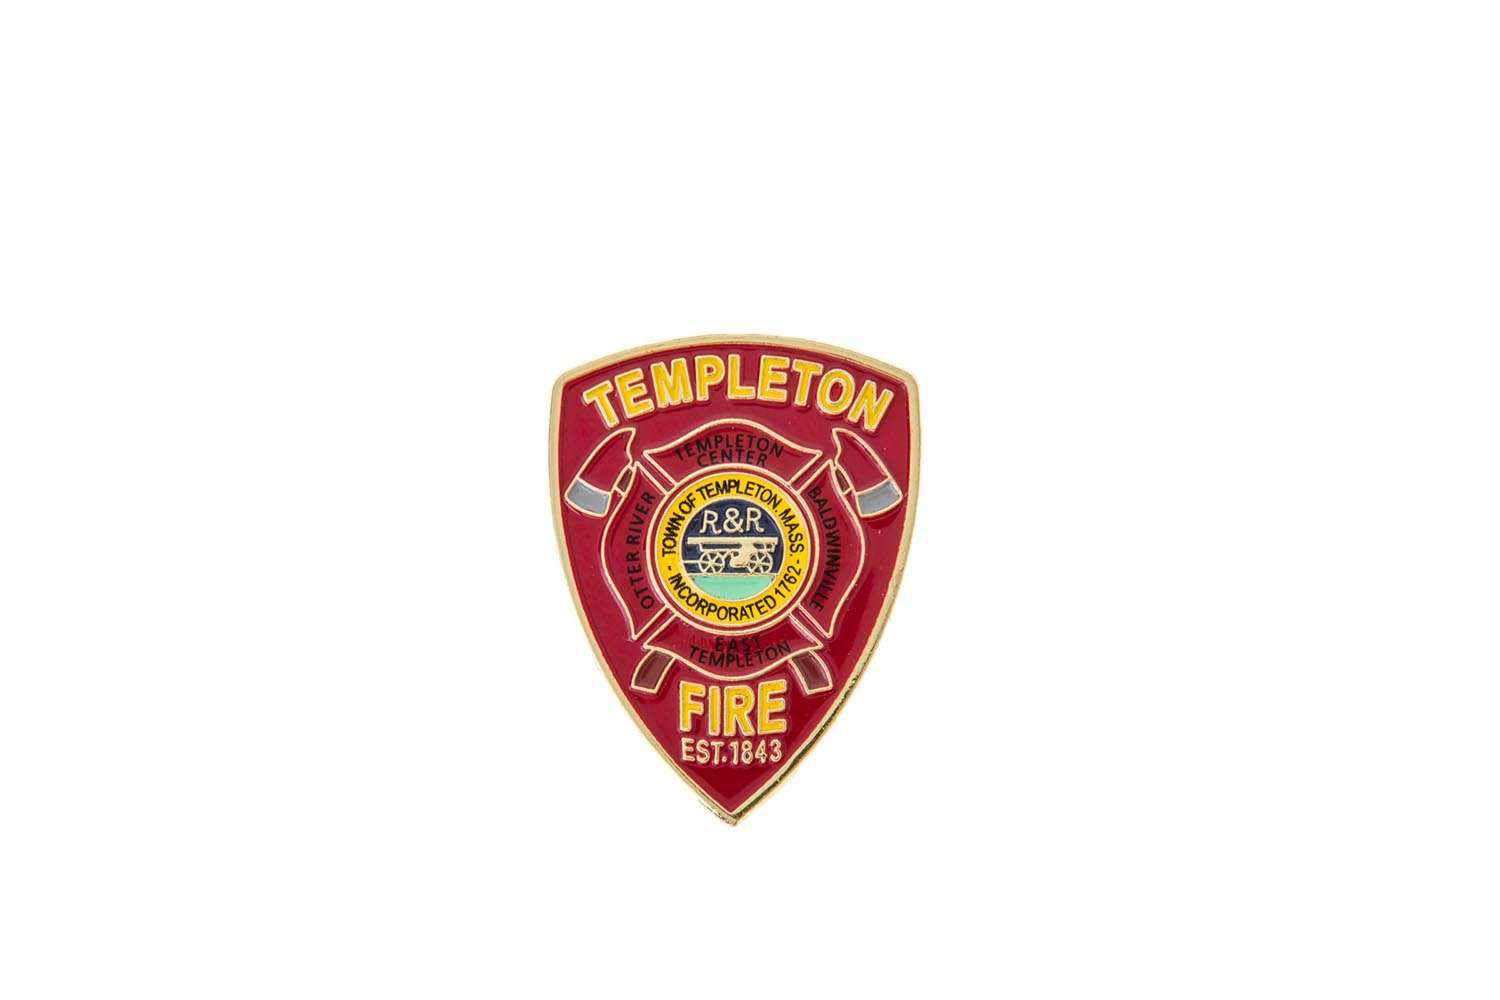 Fire department lapel pins